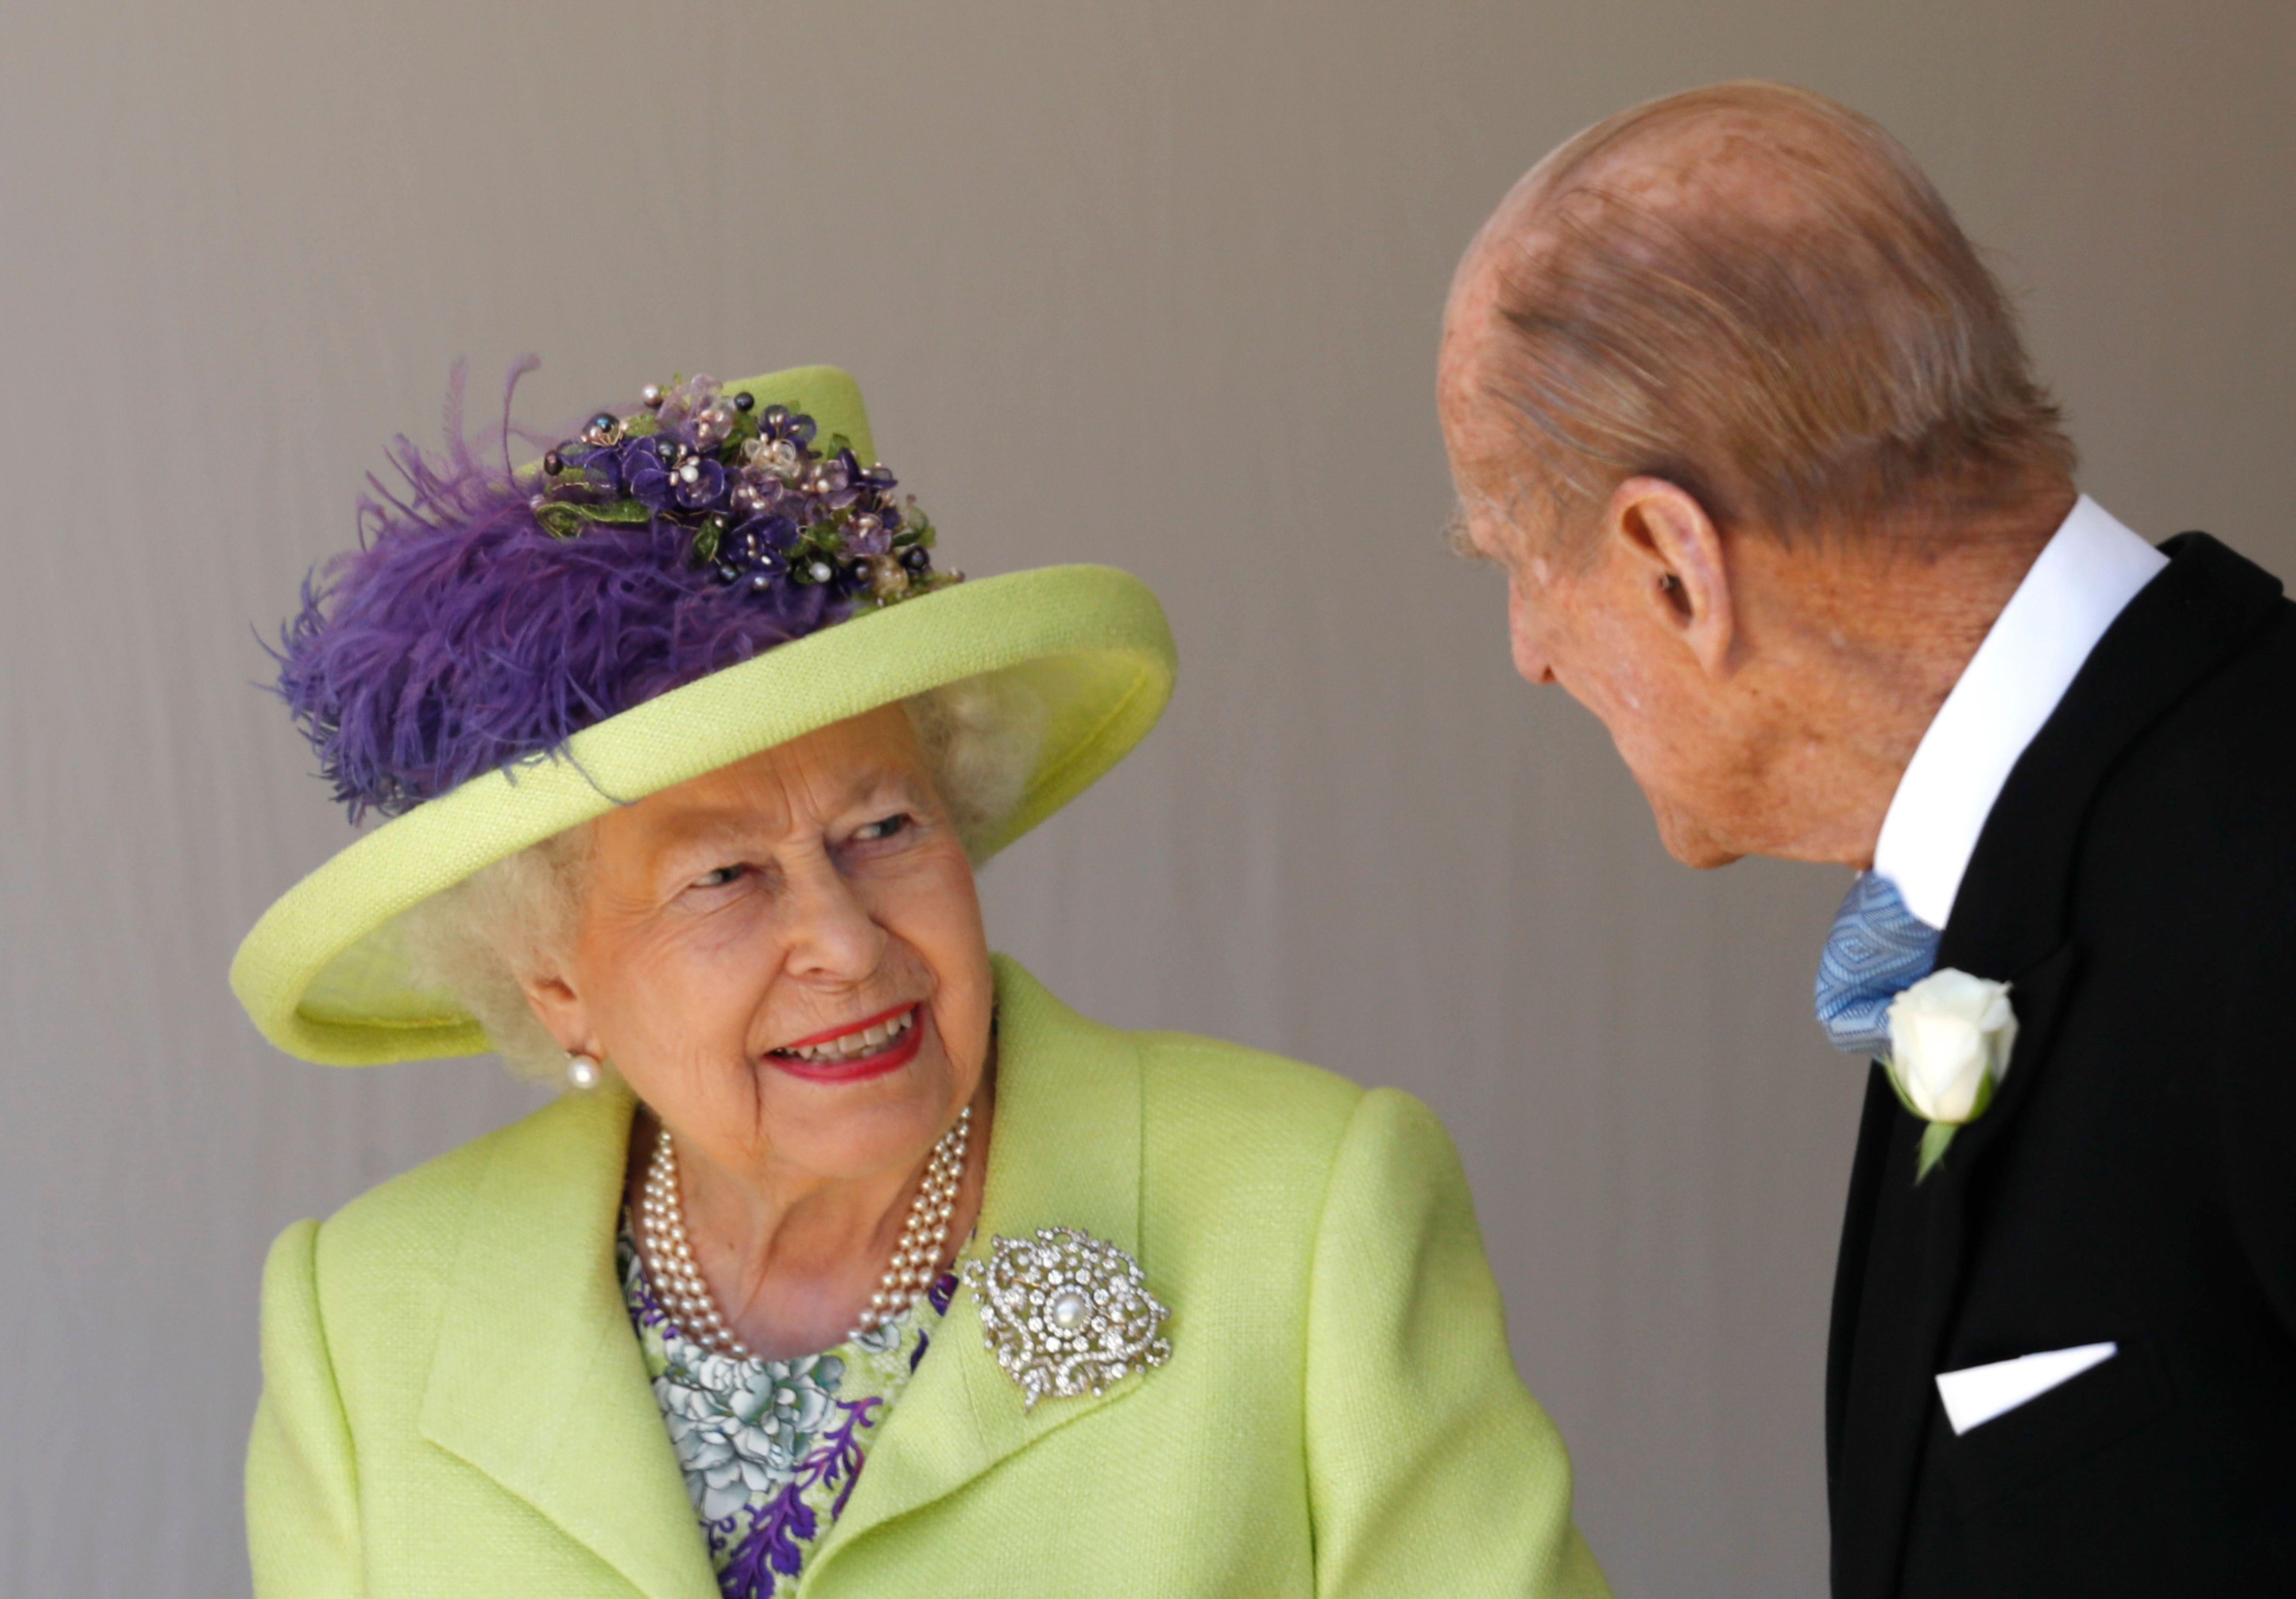 5 things you might have missed about queen elizabeth's